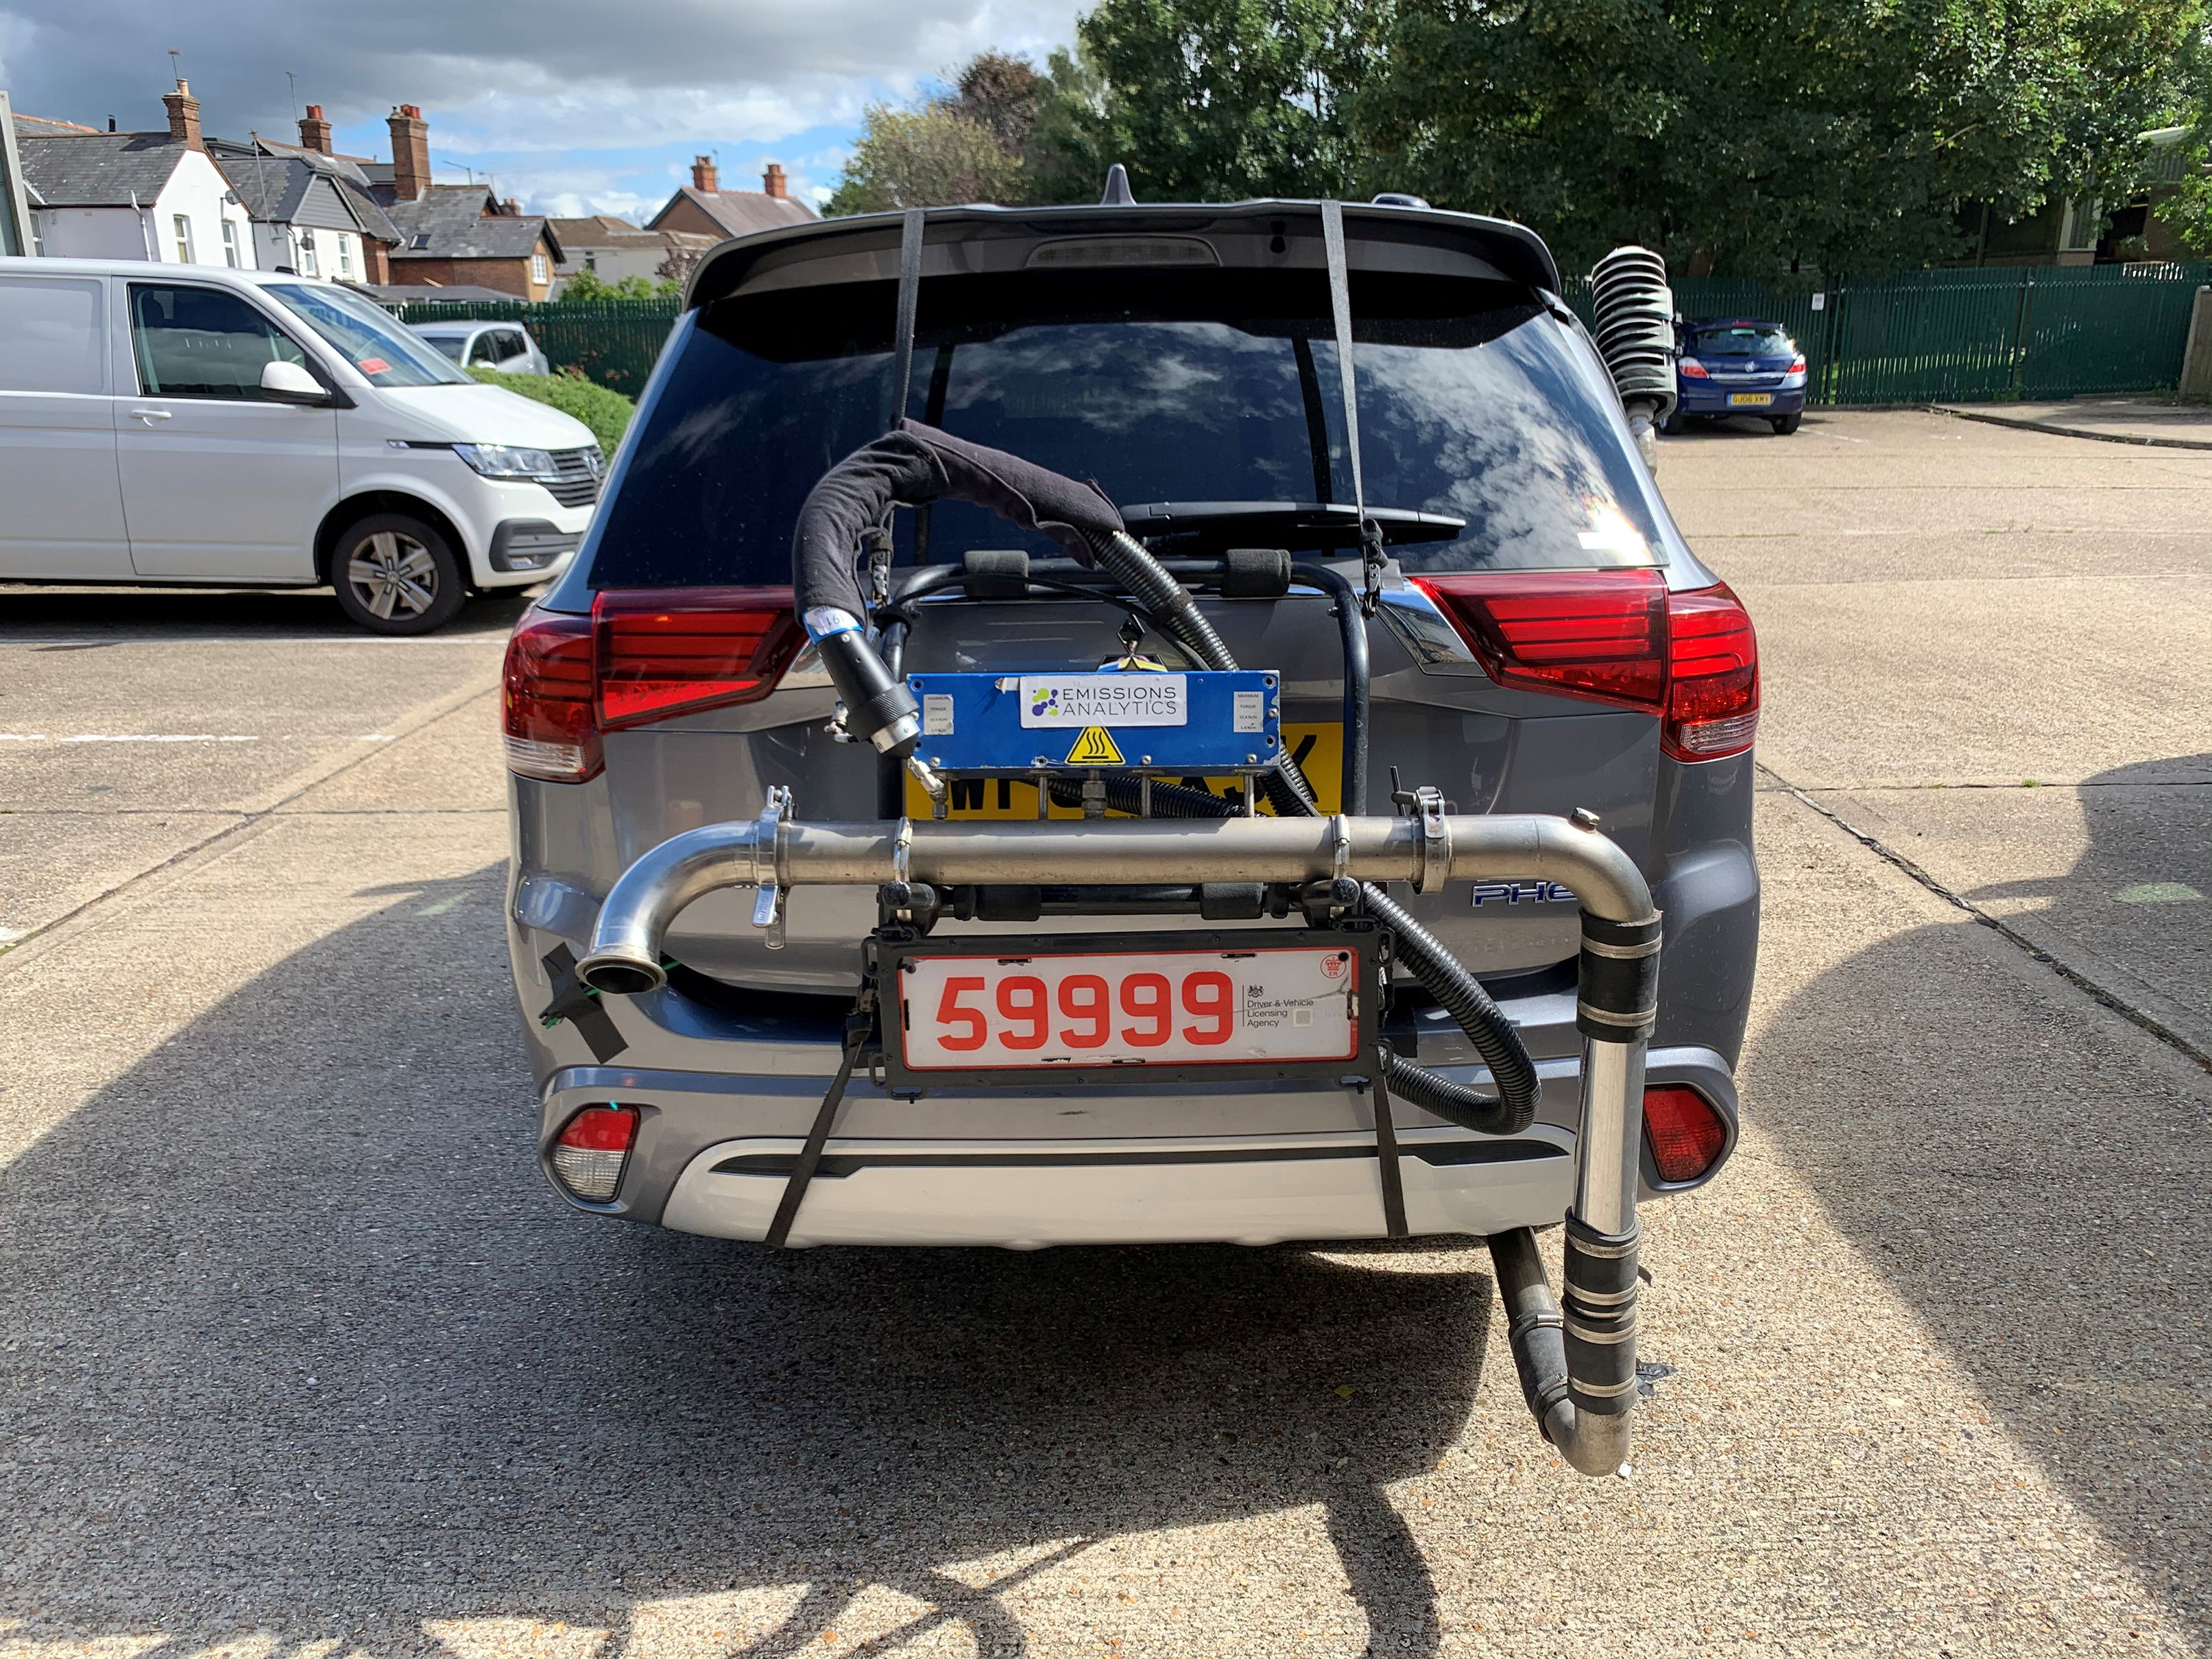 A Mitsubishi Outlander plug-in hybrid is pictured while undergoing tests by Emissions Analytics for a study on emissions by NGO Transport & Environment in unknown location in this picture obtained by Reuters on March 31, 2021. Emissions Analytics/Handout via REUTERS